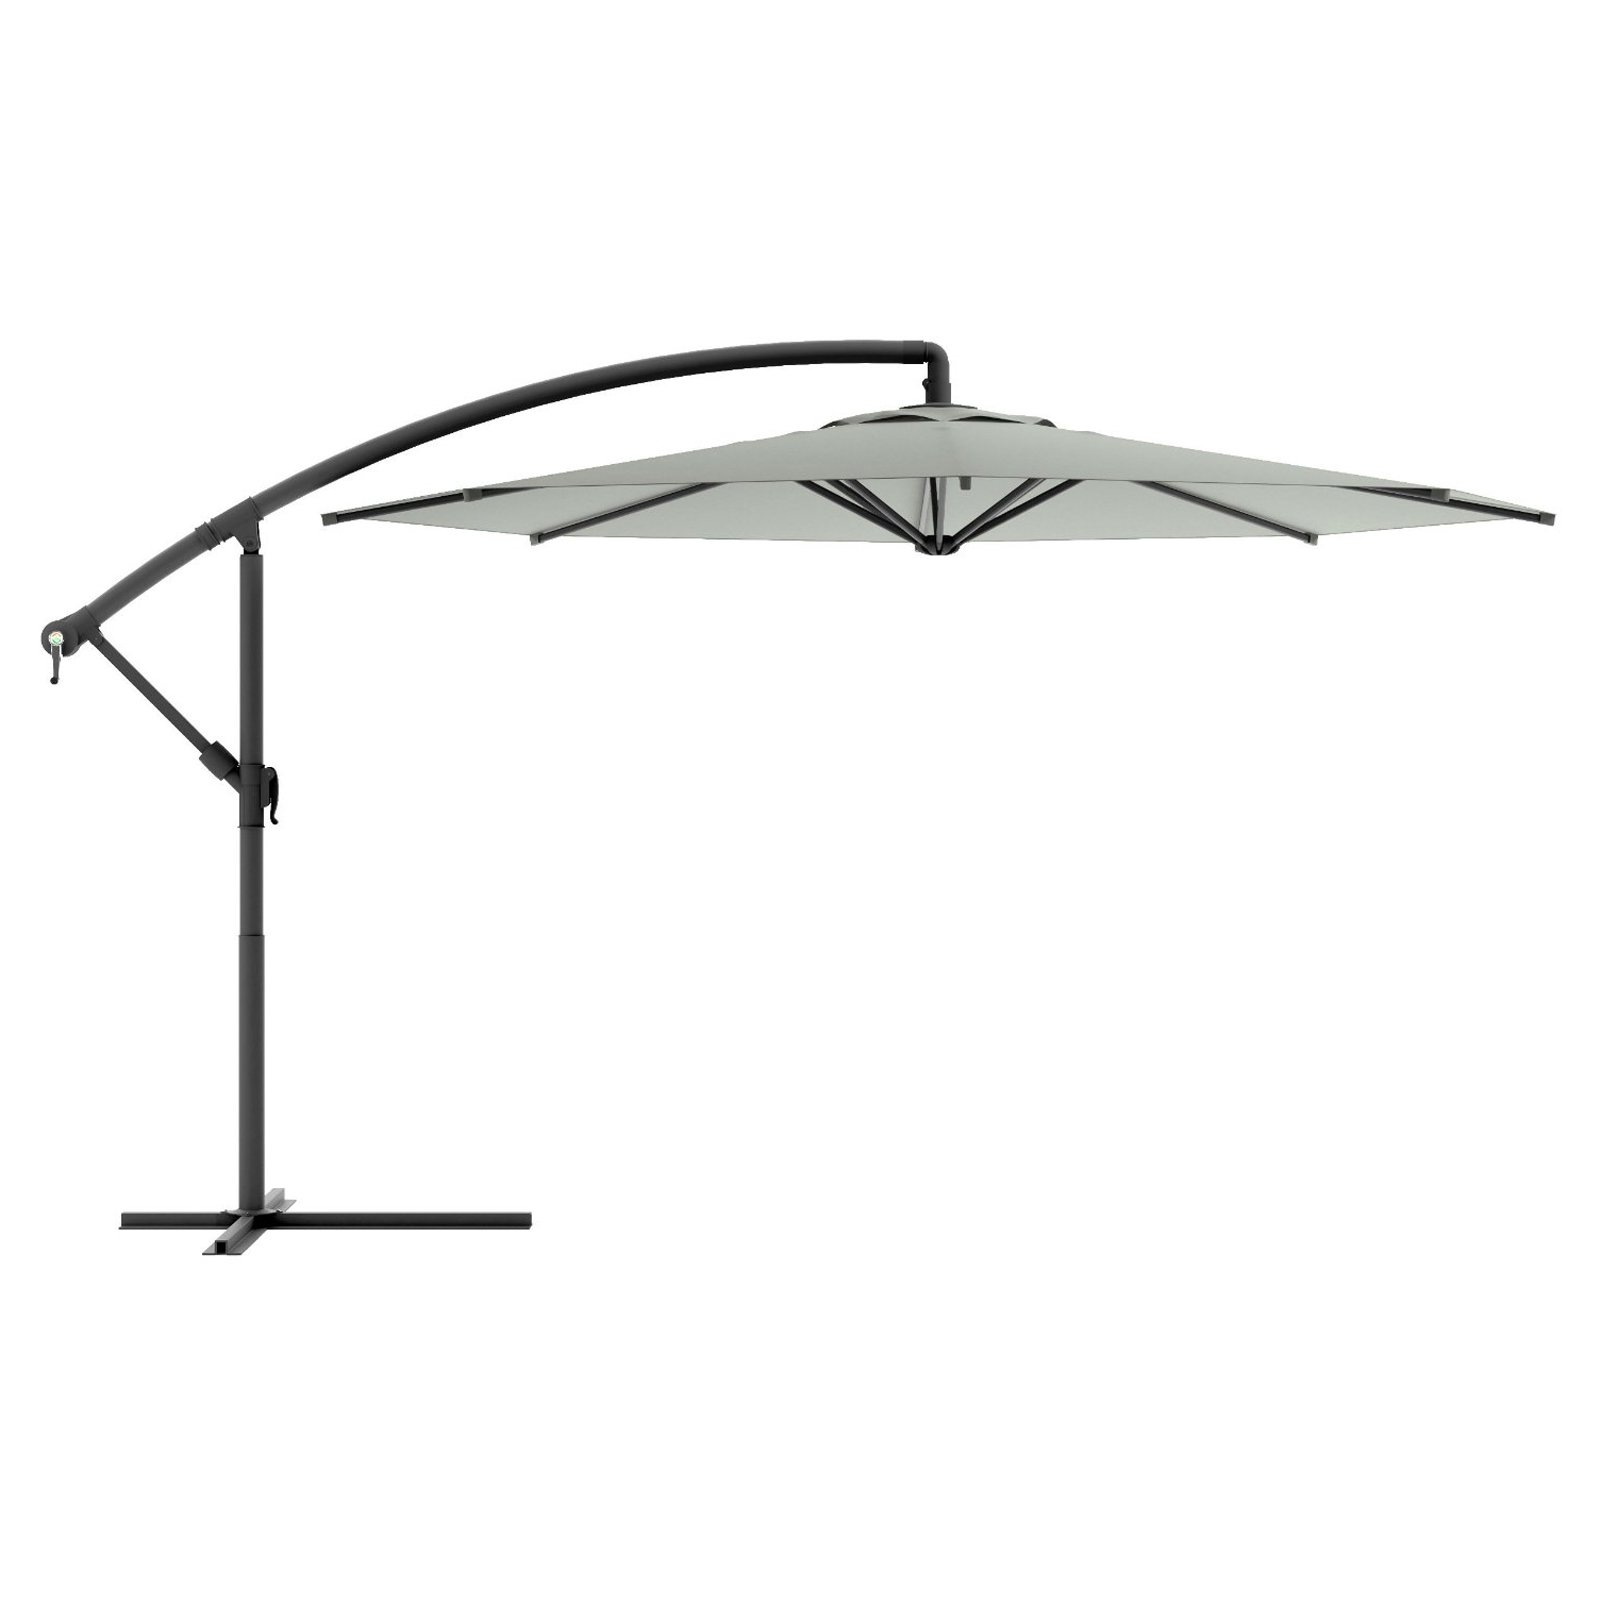 CorLiving Offset Patio Umbrella, Multiple Colors